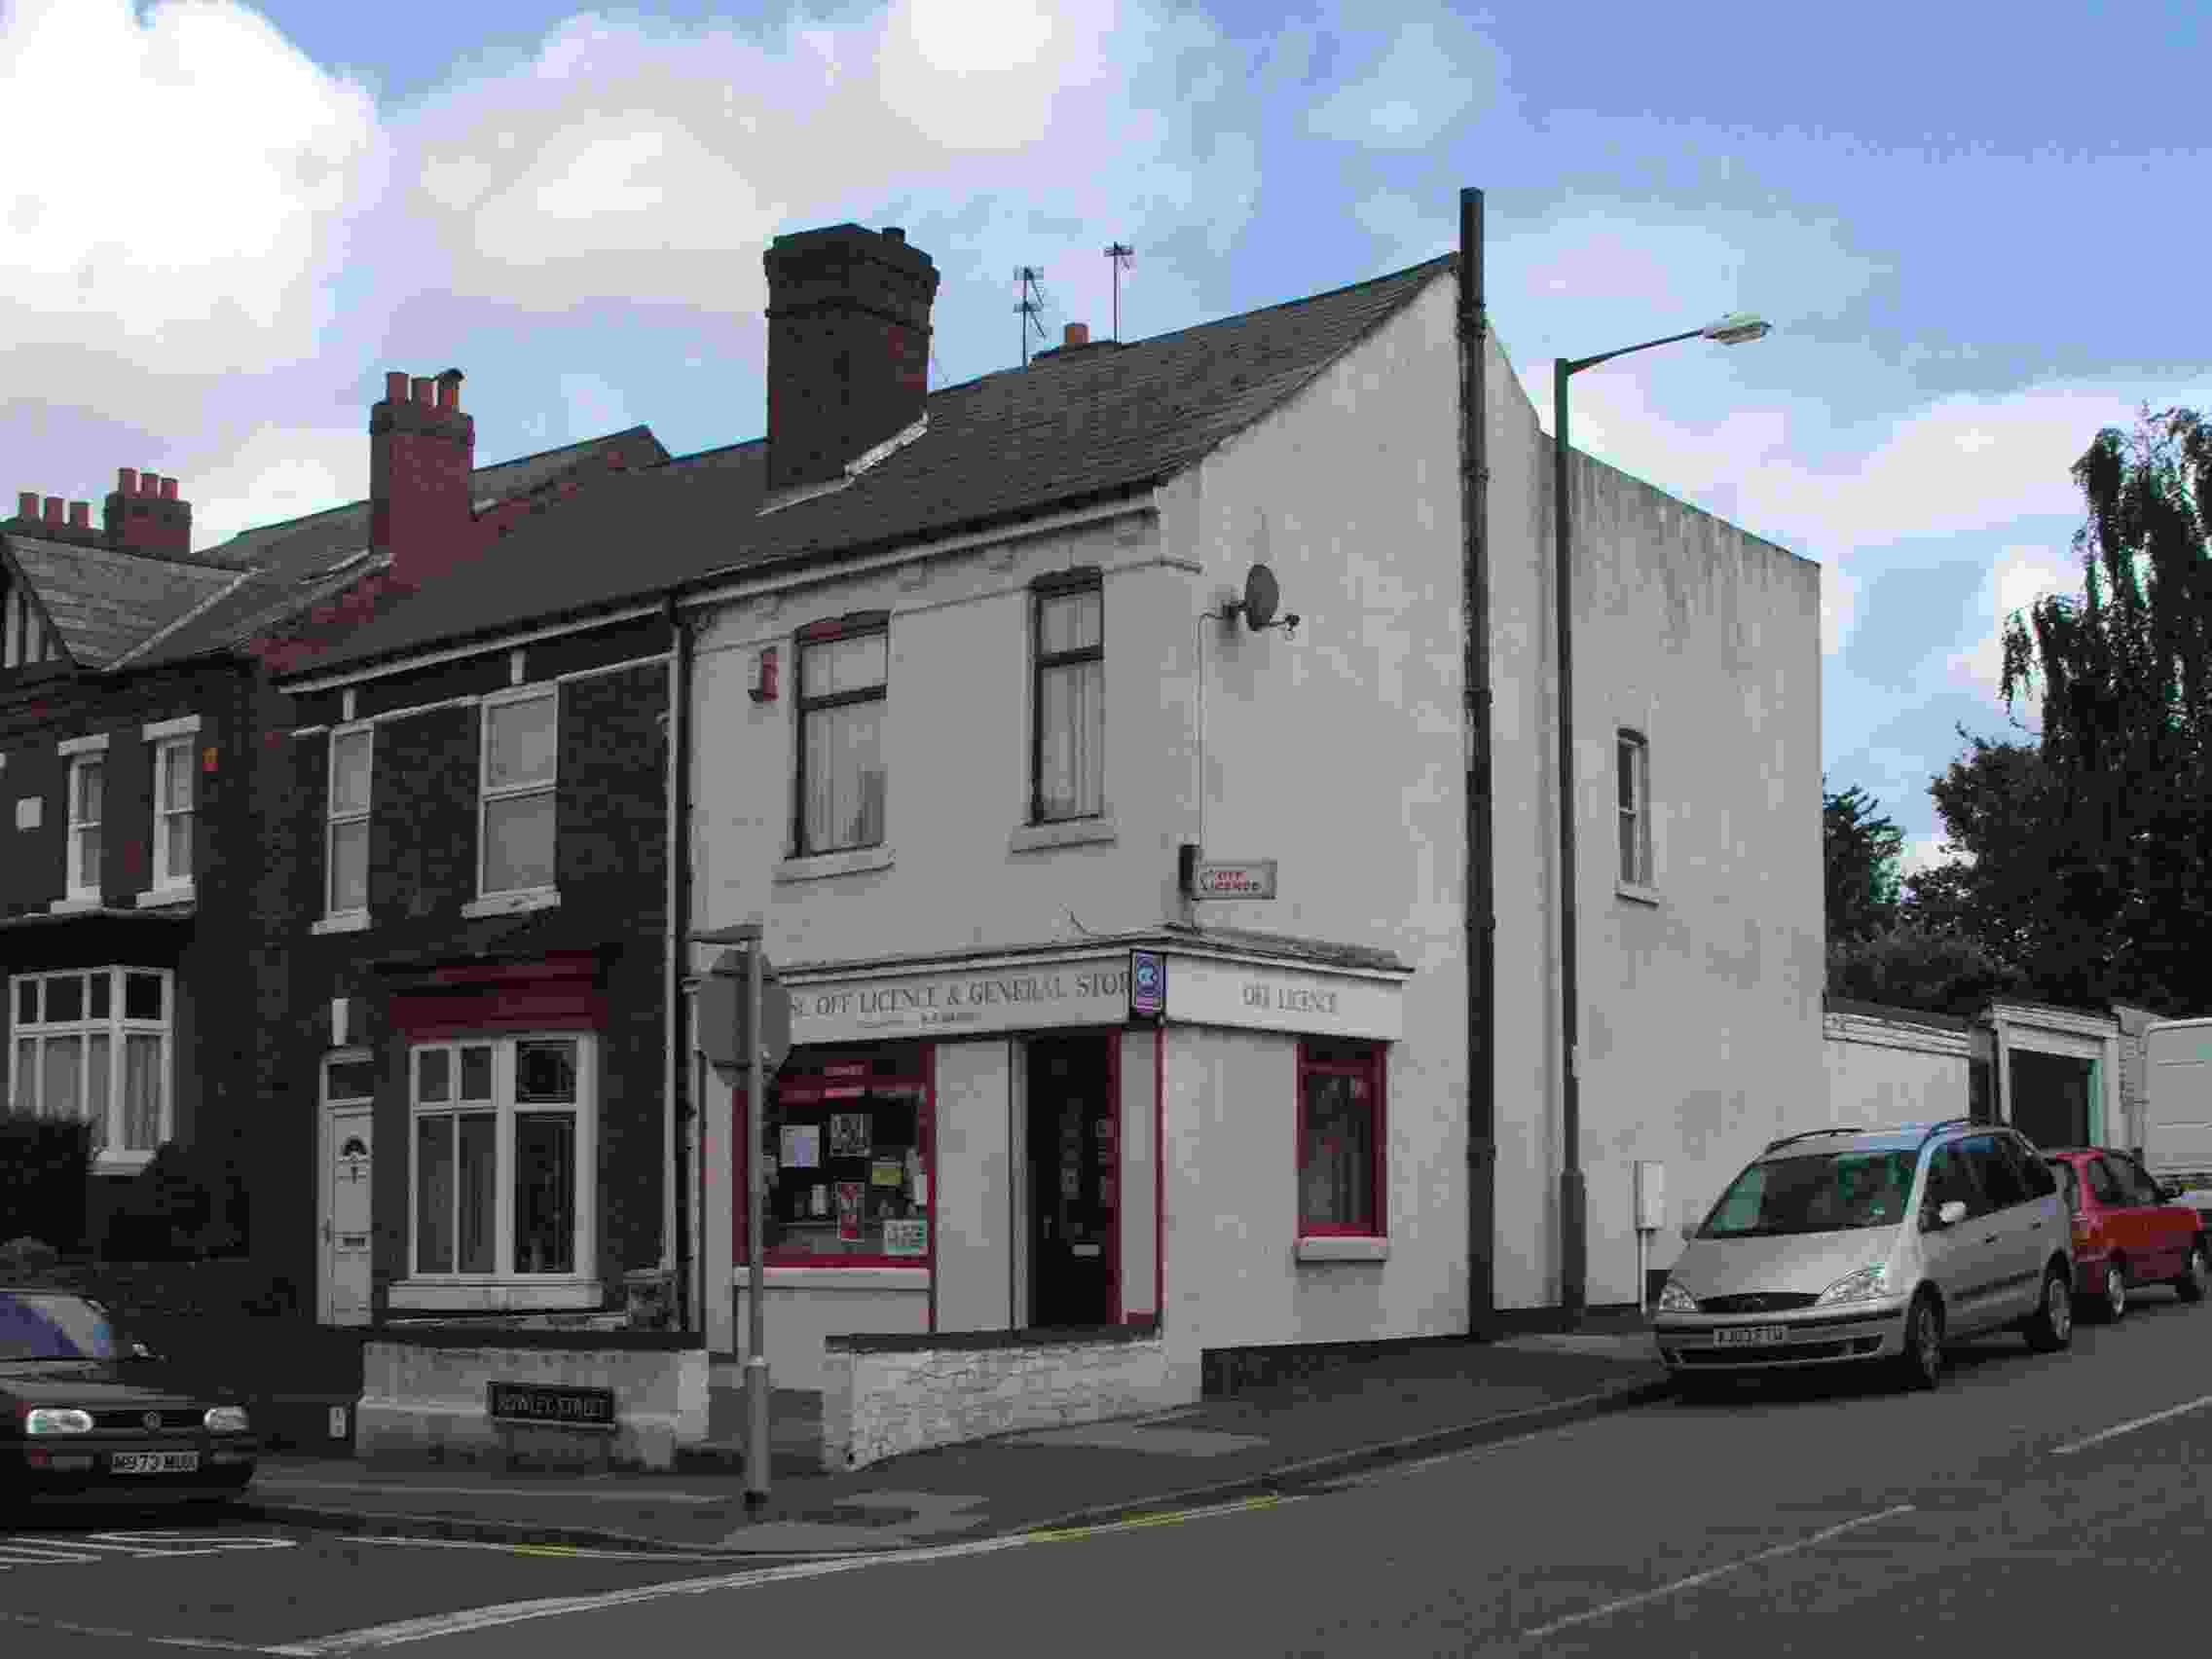 Rolwey Street Off Licence – Walsall, West Midlands